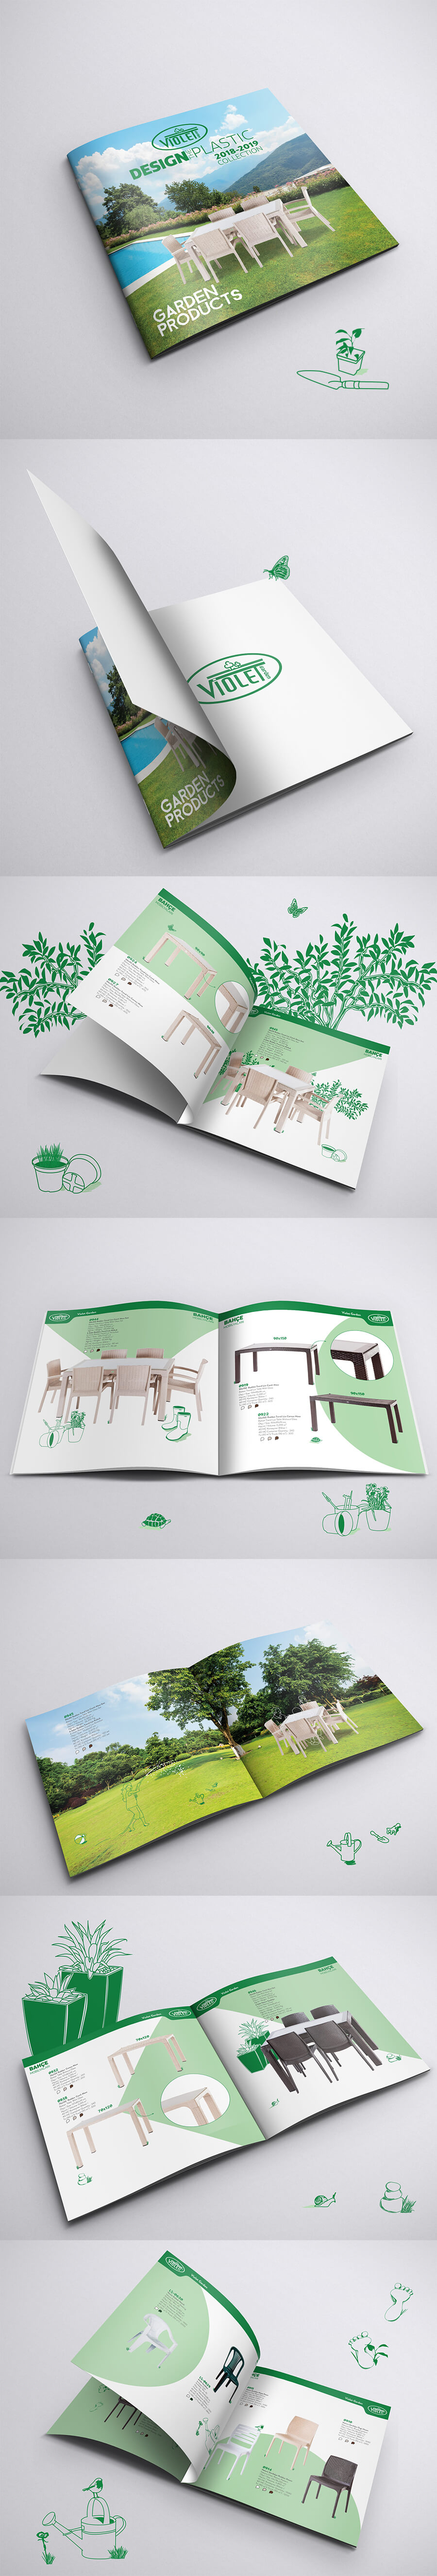 violet_garden_catalogue_design